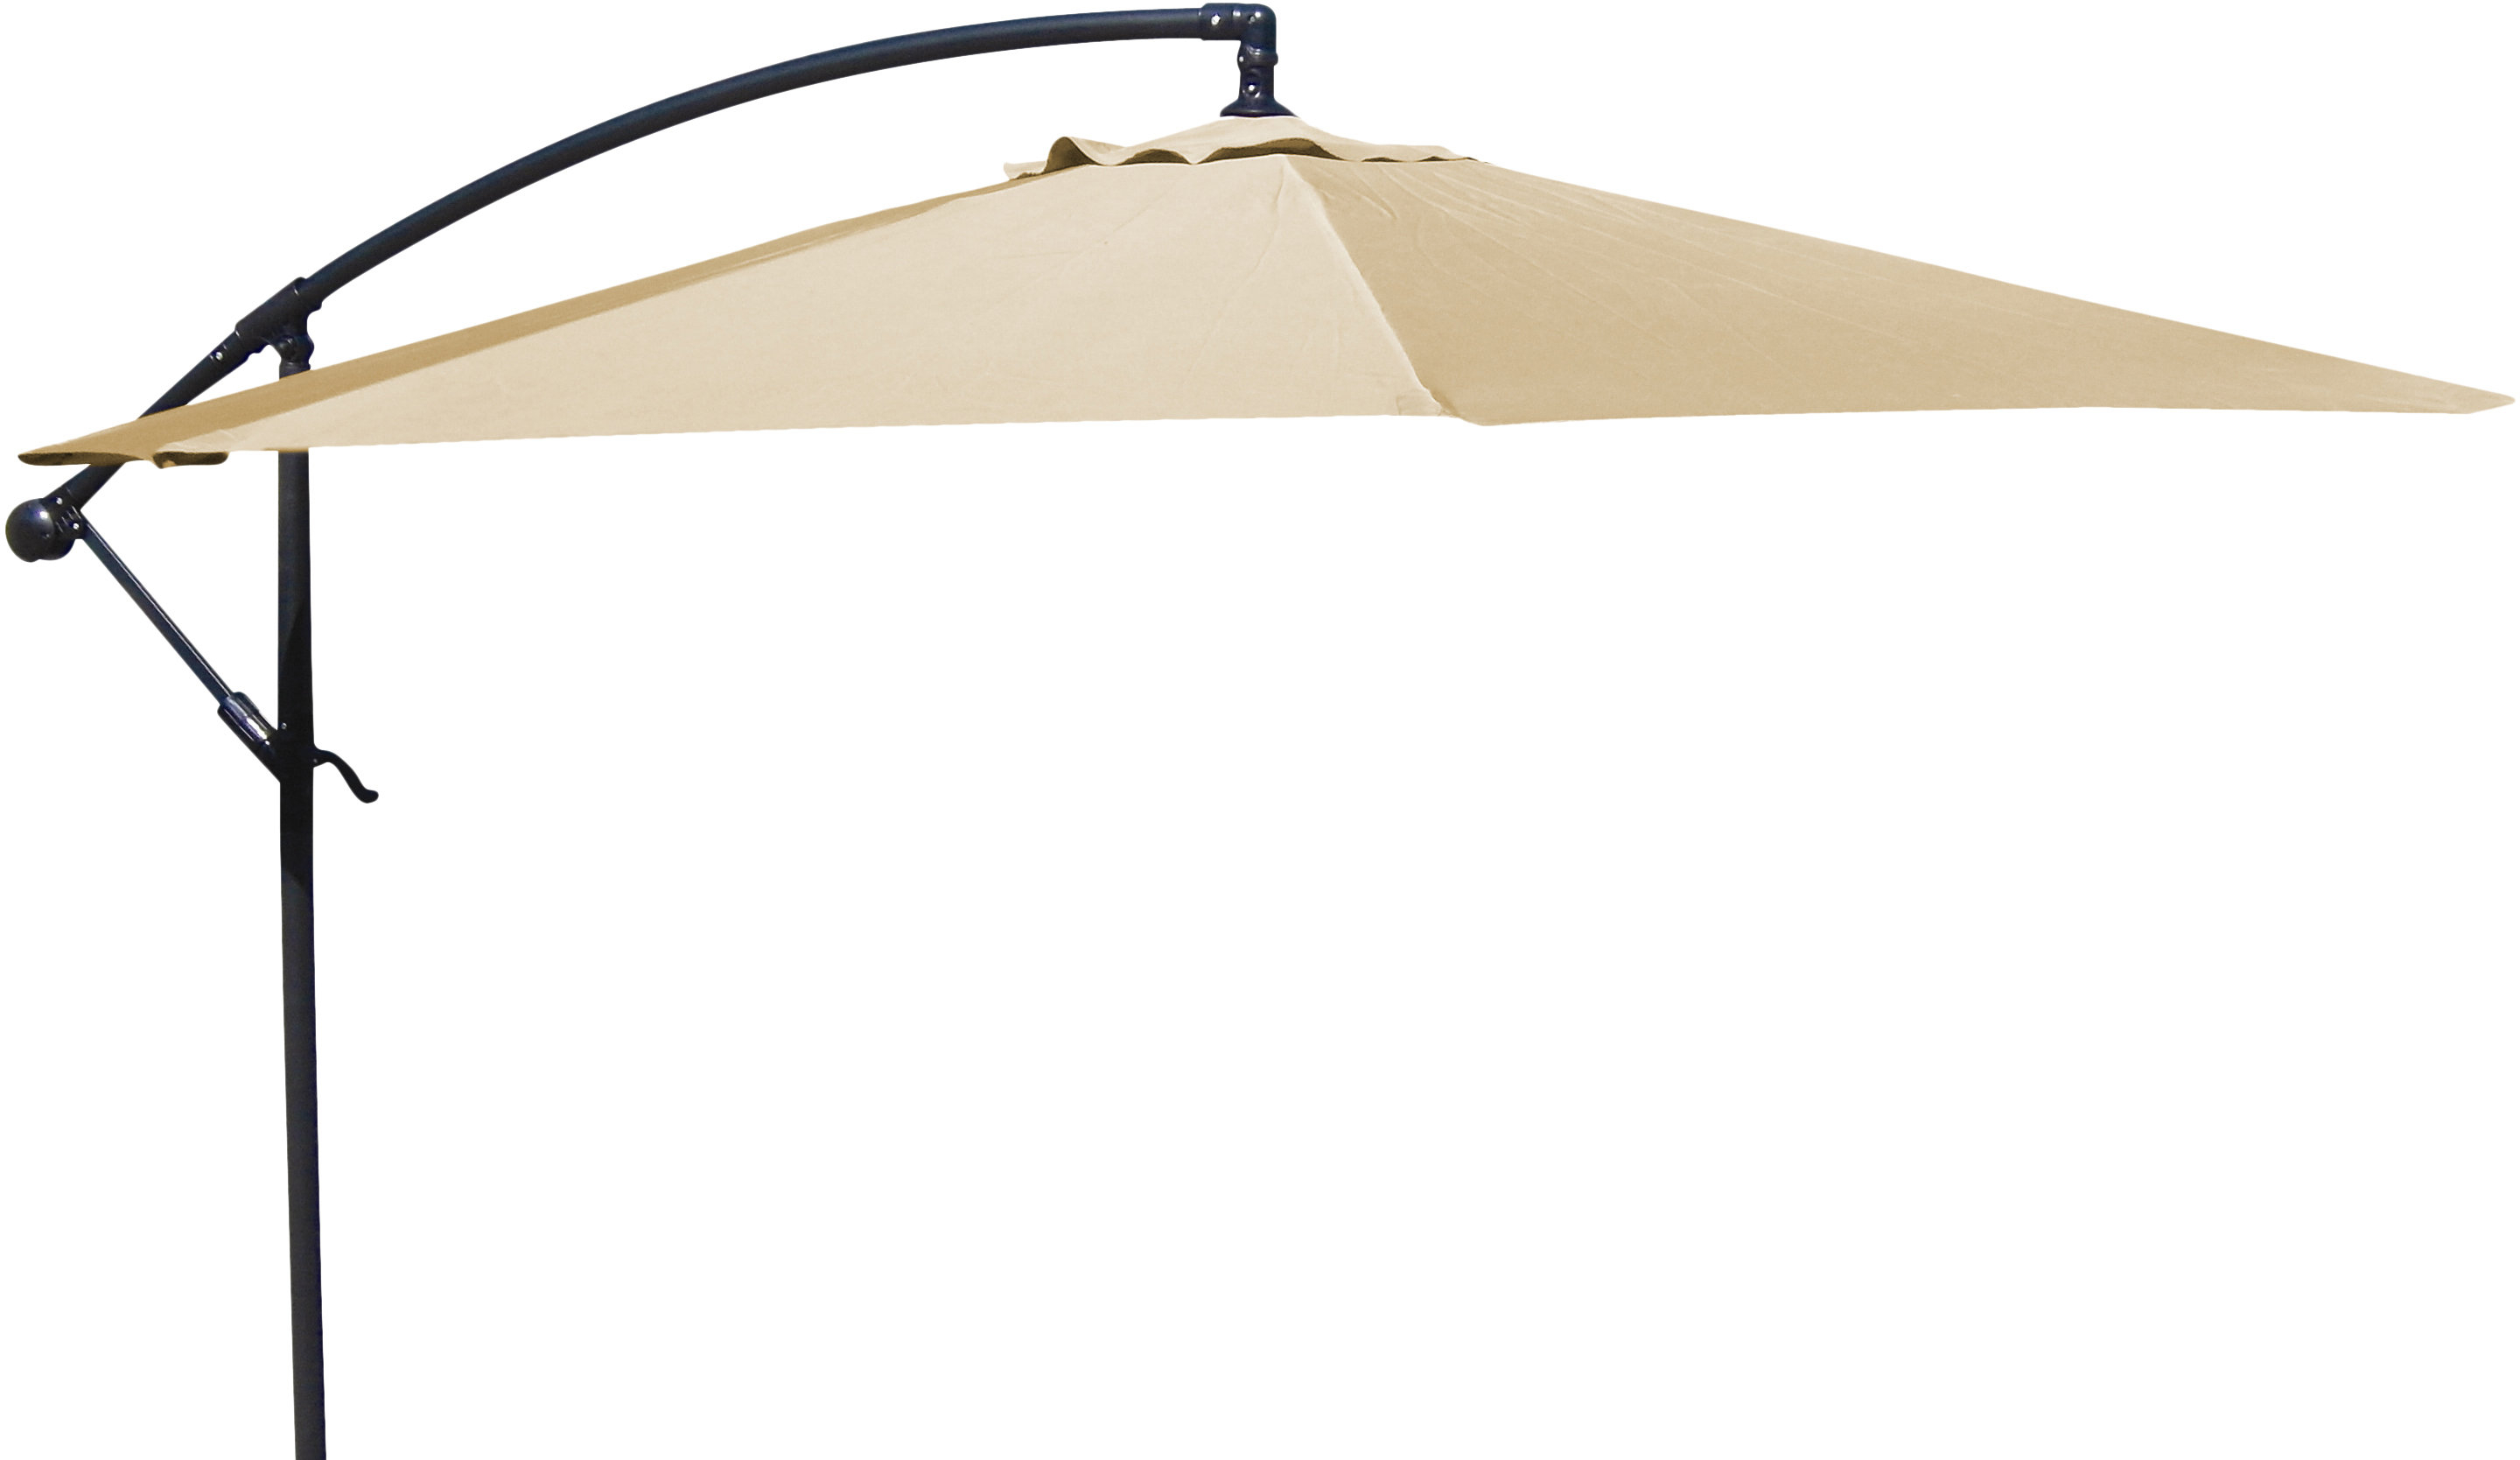 Trotman 10' Cantilever Umbrella Pertaining To Most Current Booneville Cantilever Umbrellas (View 8 of 20)